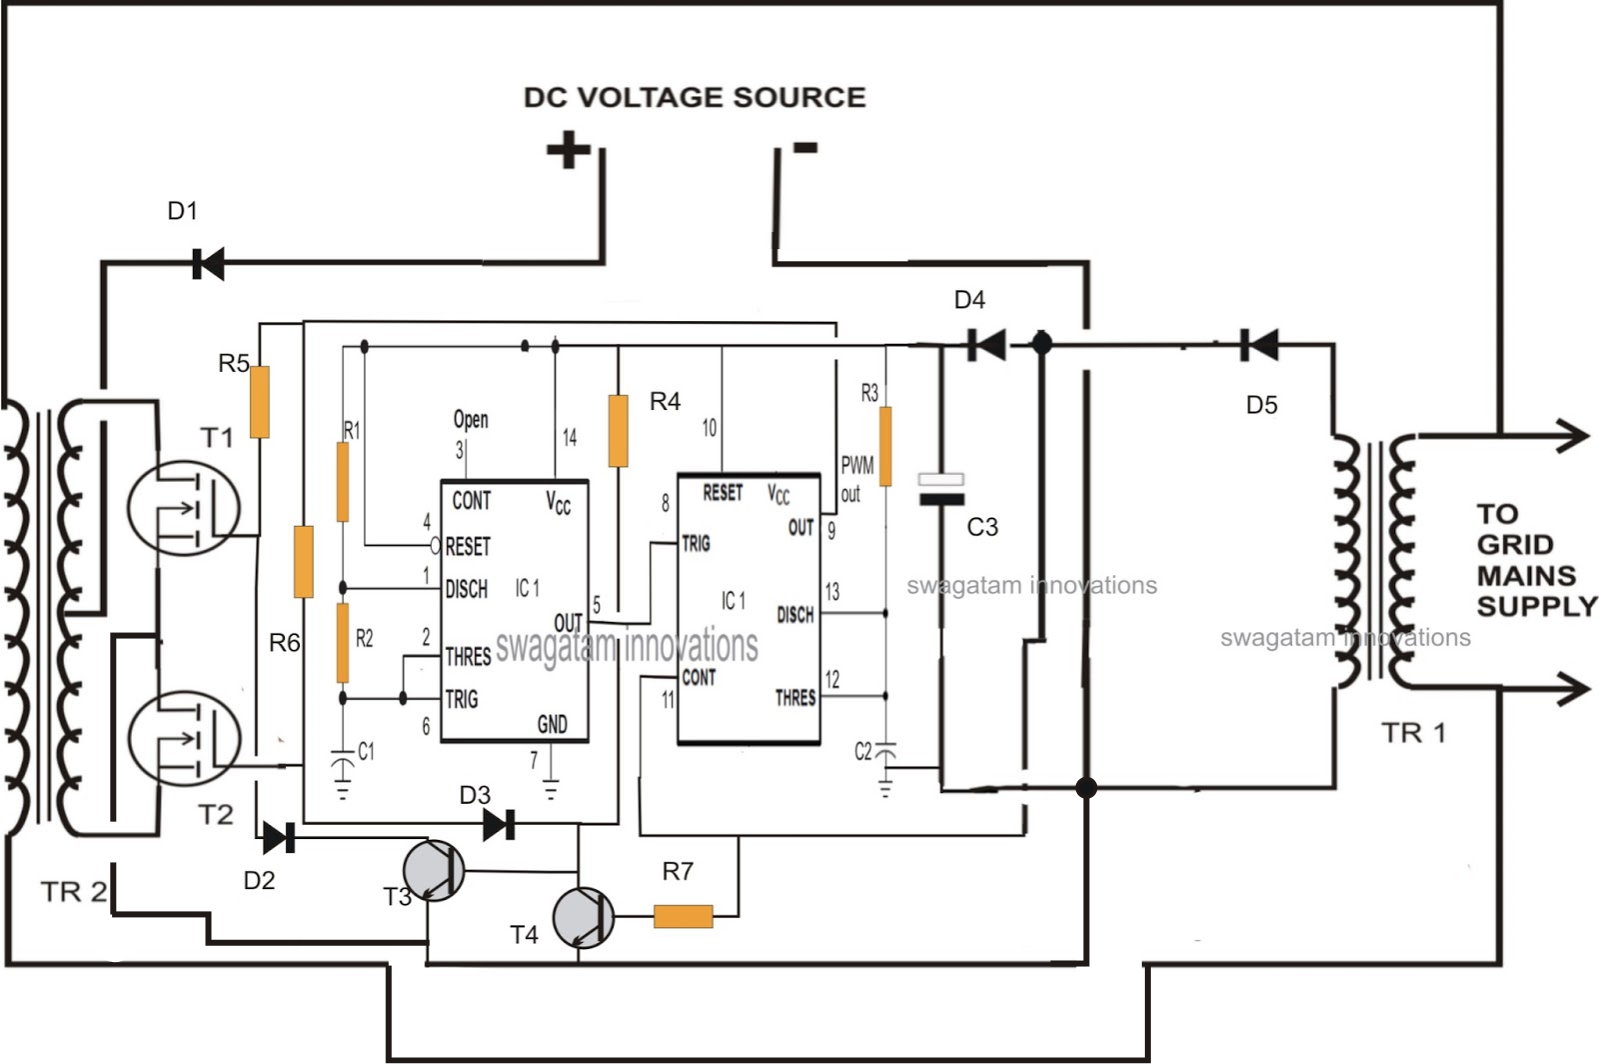 solar grid tie inverter circuit diagram leviton 3 way switch with pilot light wiring japanese company develops a cell record